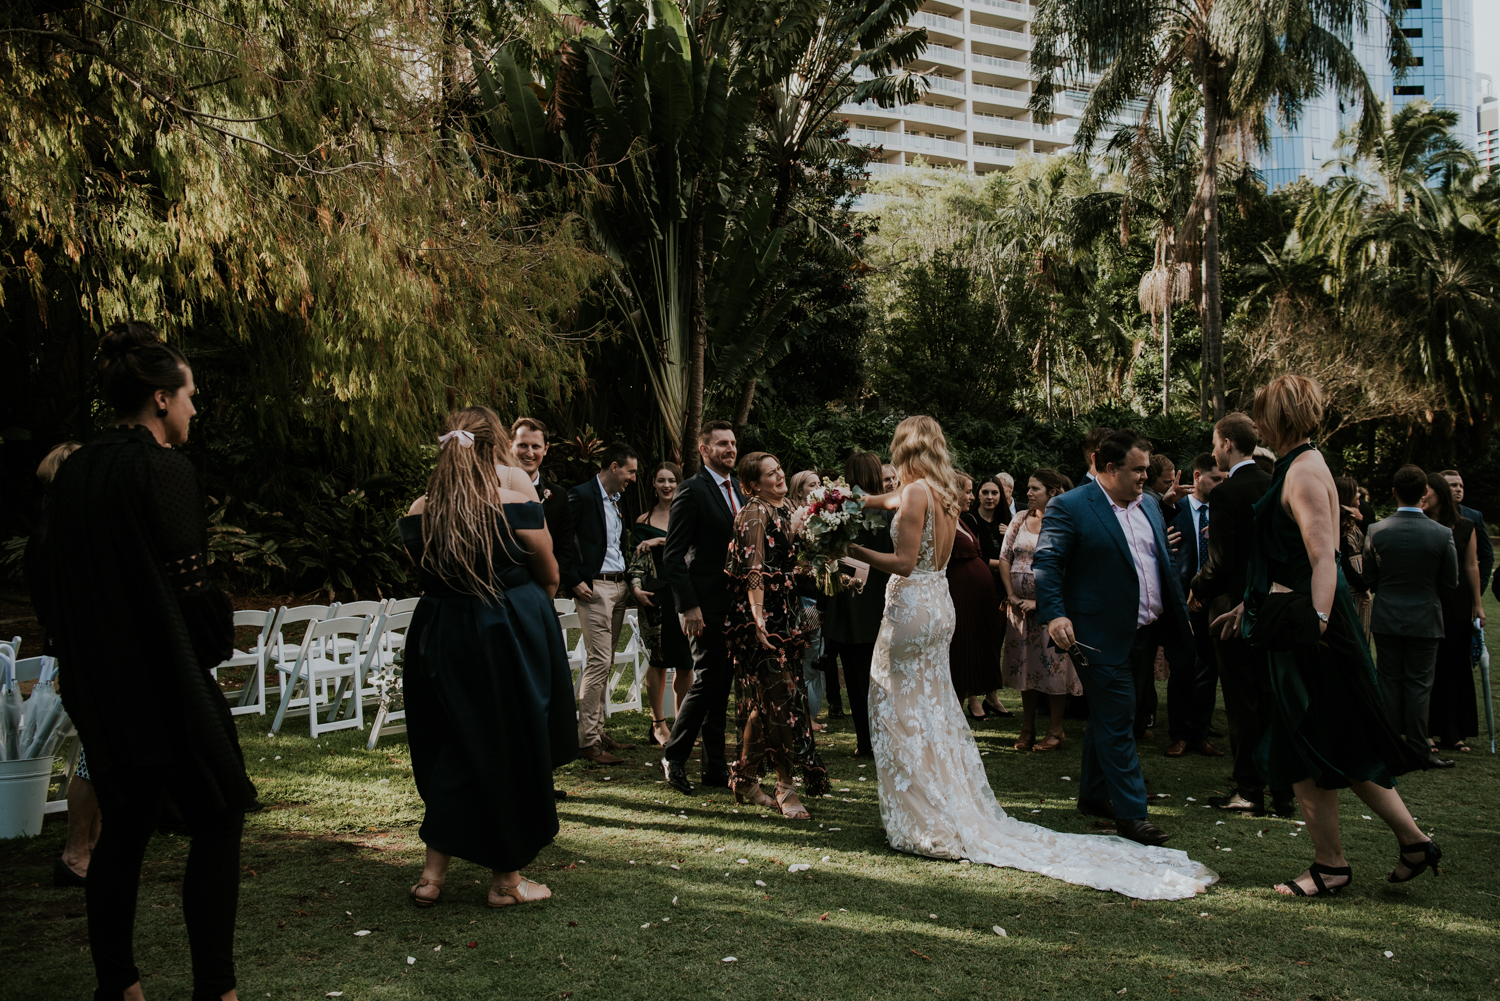 Brisbane Wedding Photographer | Engagement-Elopement Photography | Factory51-City Botantic Gardens Wedding-41.jpg